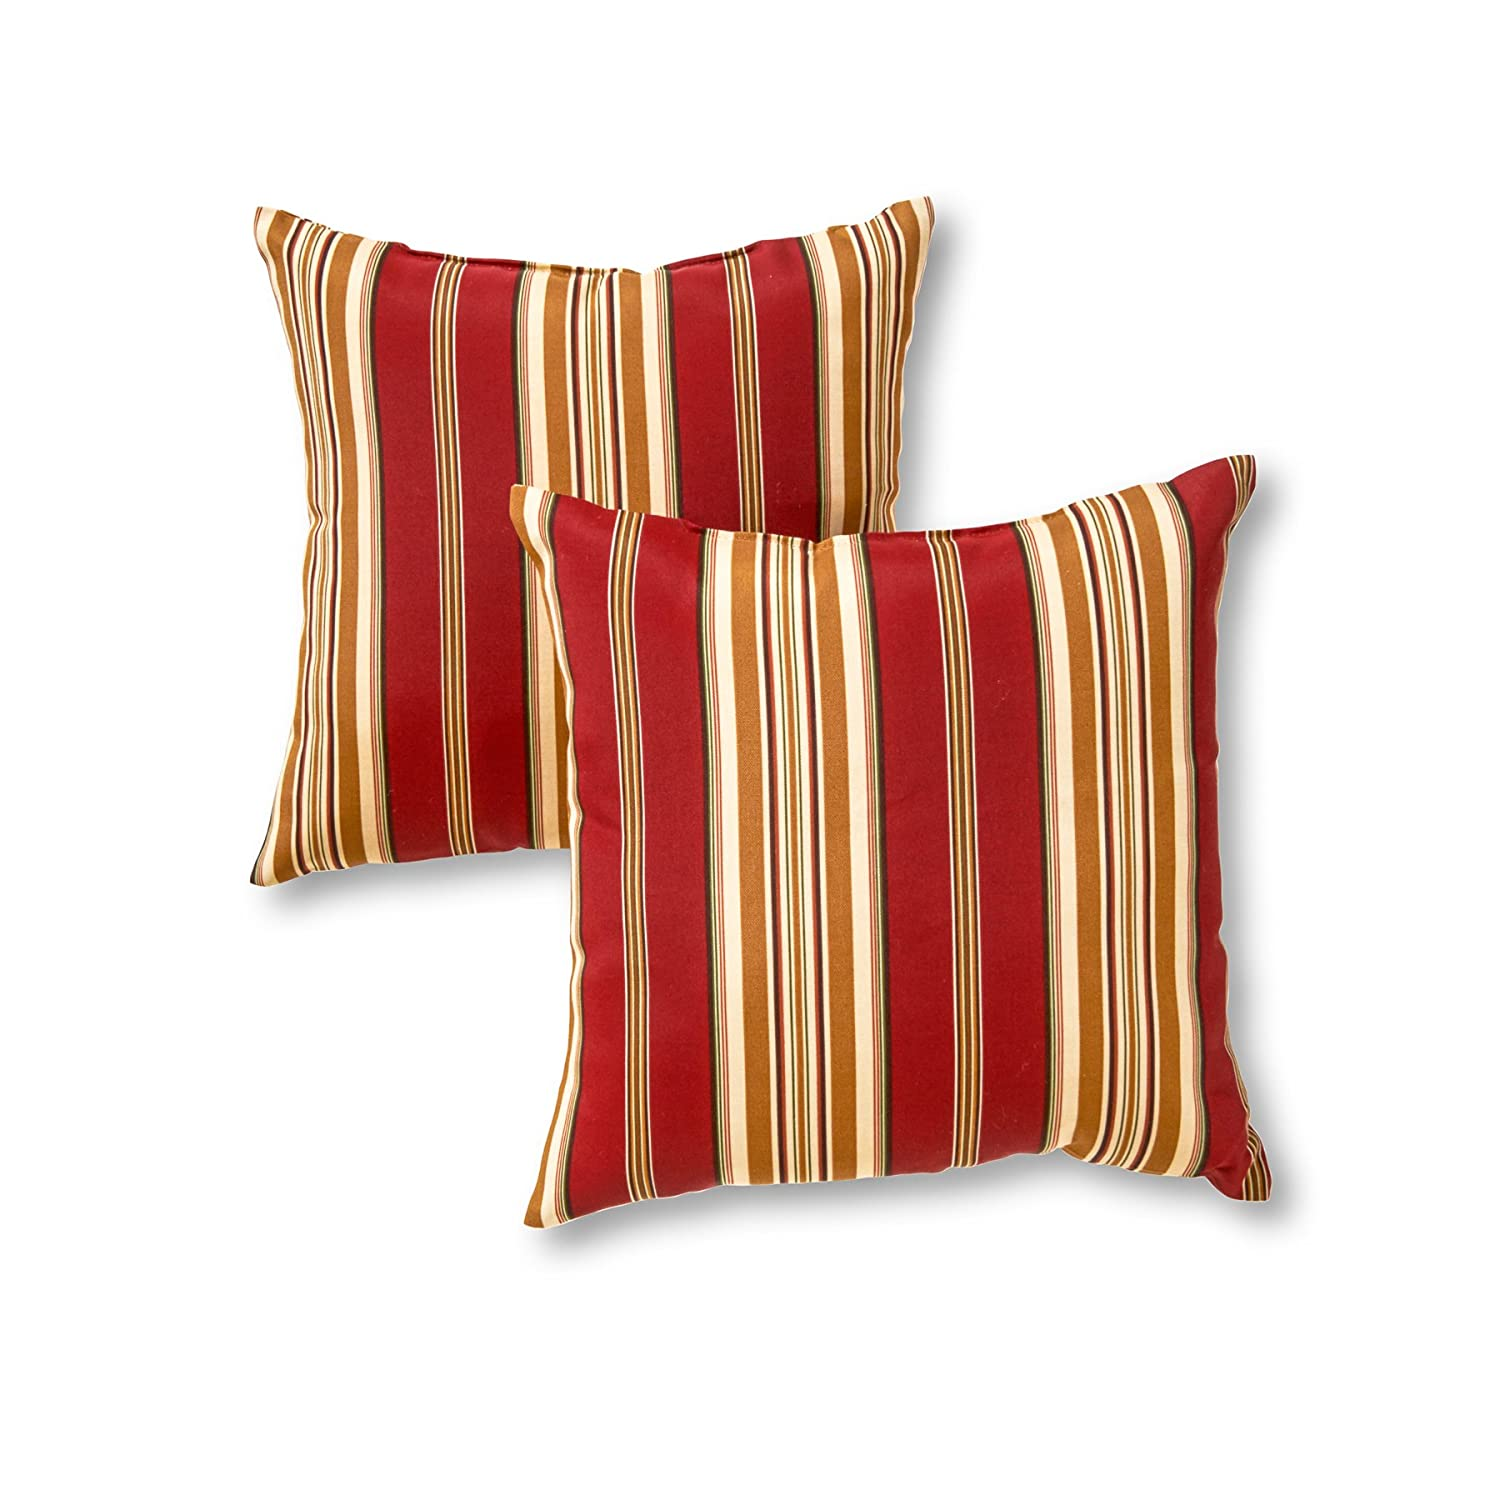 Decorative Pillows Set Of 2 : Home Indoor Outdoor Accent Pillows Decorative Designer Decorator Set of 2 New eBay